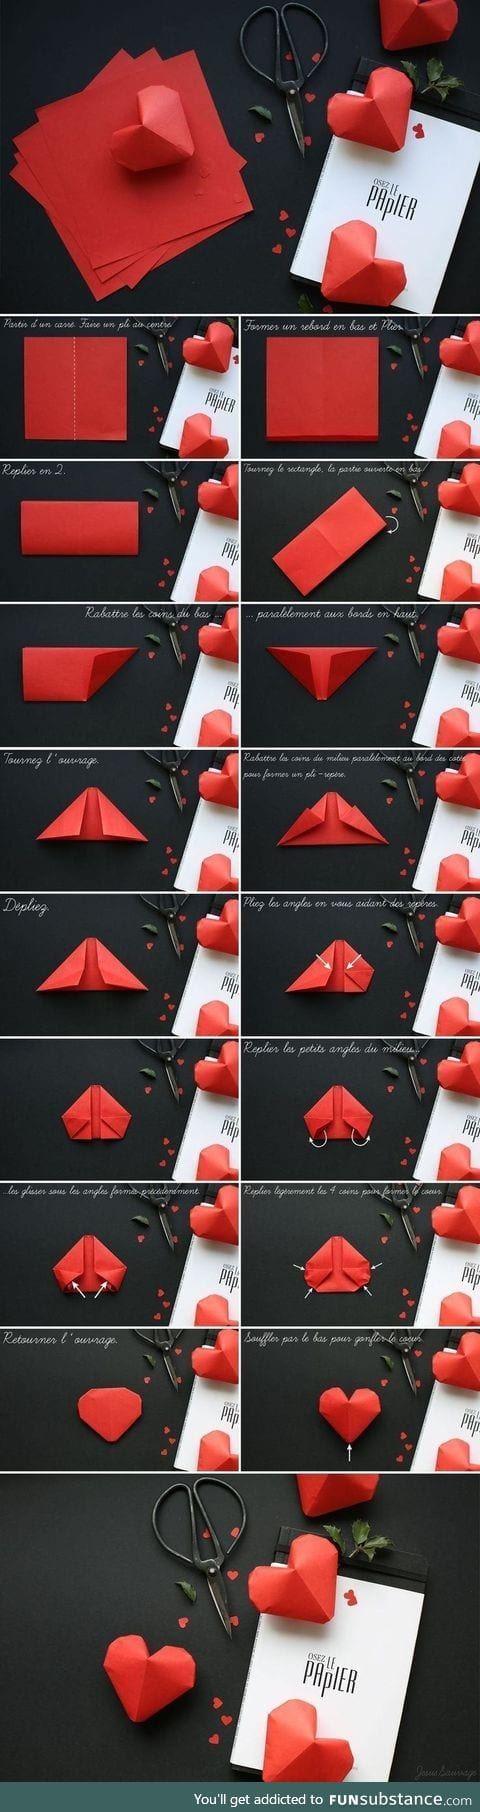 How to make a 3D heart origami